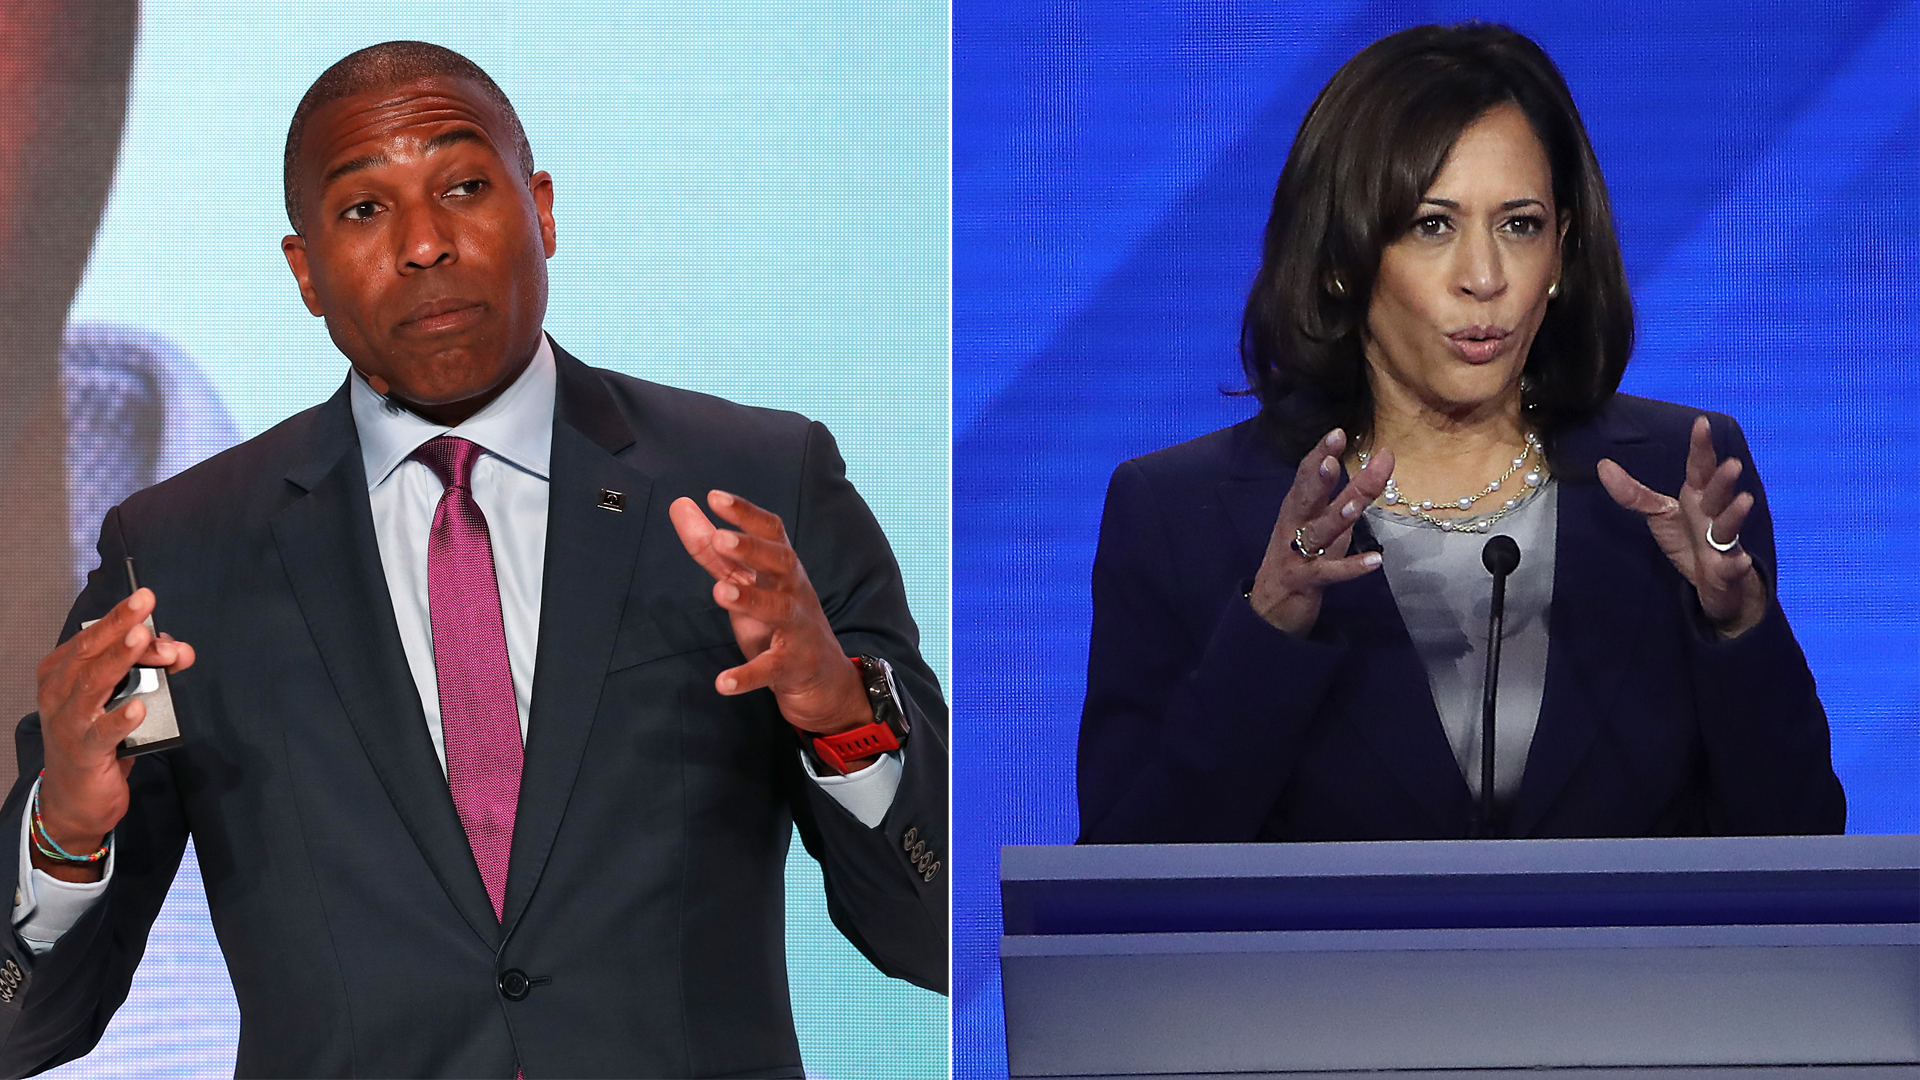 Tony West, left, is the chief legal officer for Uber and brother-in-law of Sen. Kamala Harris, right.(Credit: Tasos Katopodis and Win McNamee/ Getty Images)